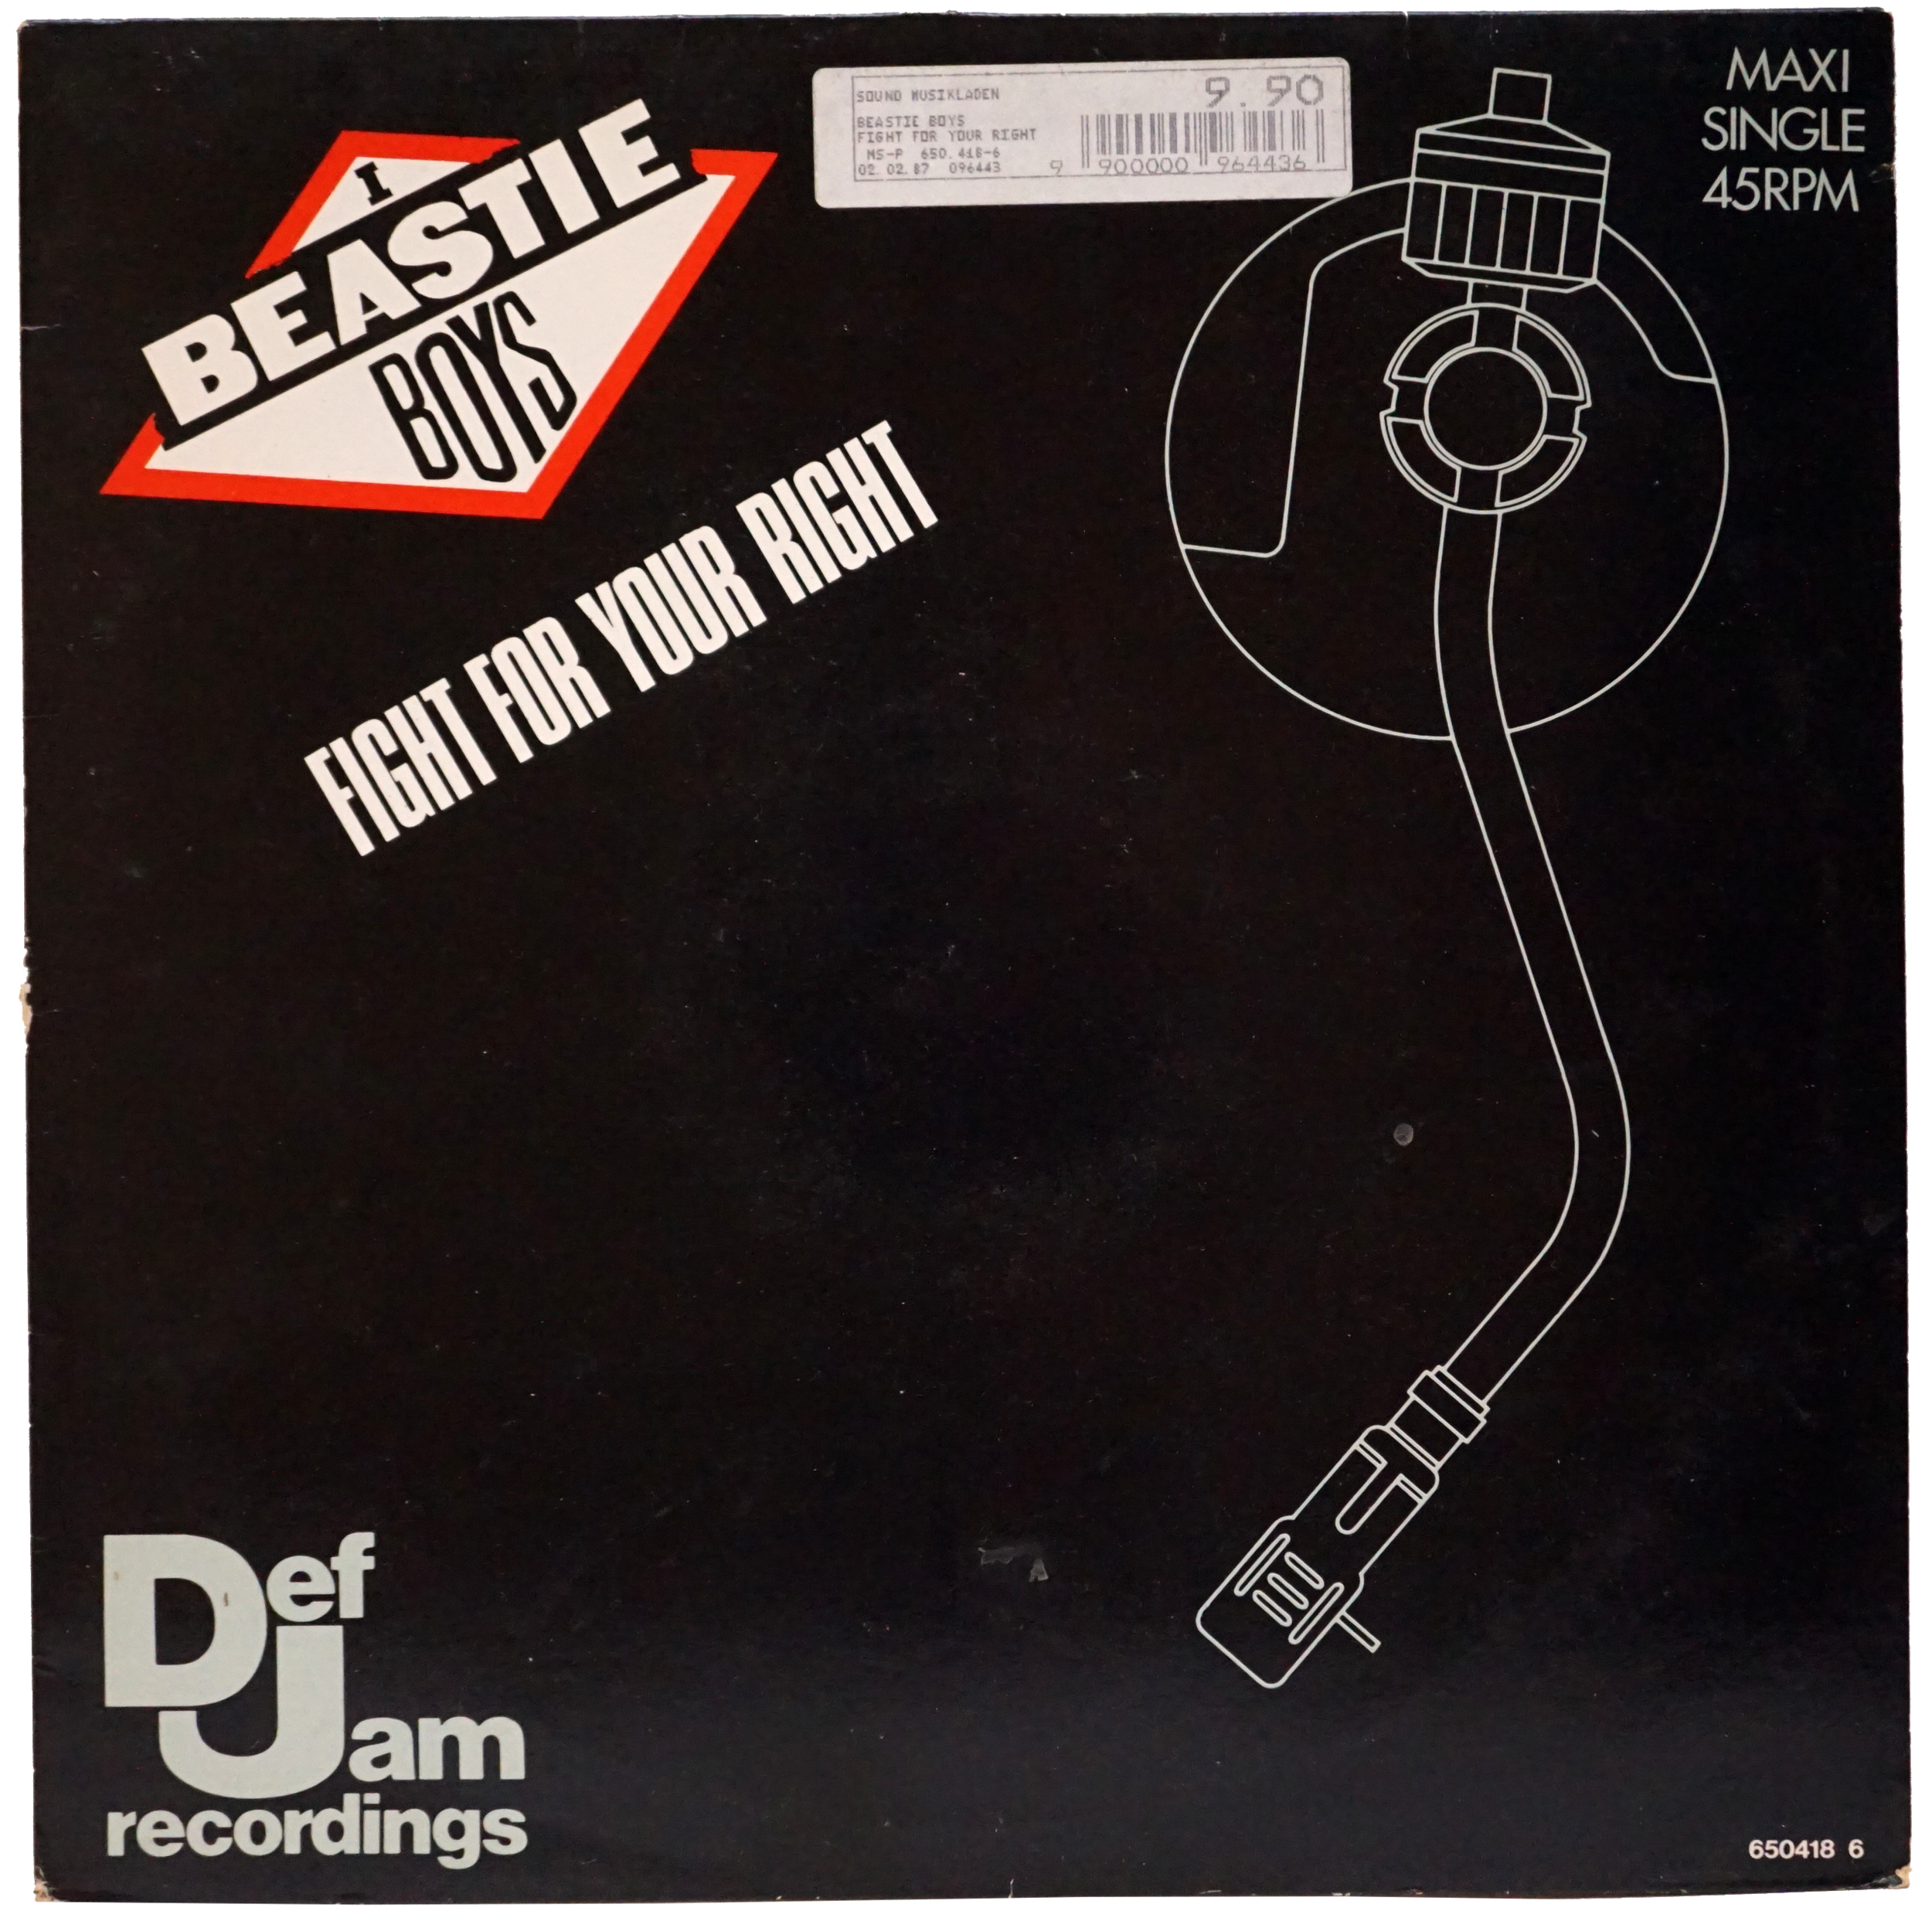 WLWLTDOO-1986-12-BEASTIE_BOYS-TIME_TO_GET_ILL-A-6504186.png